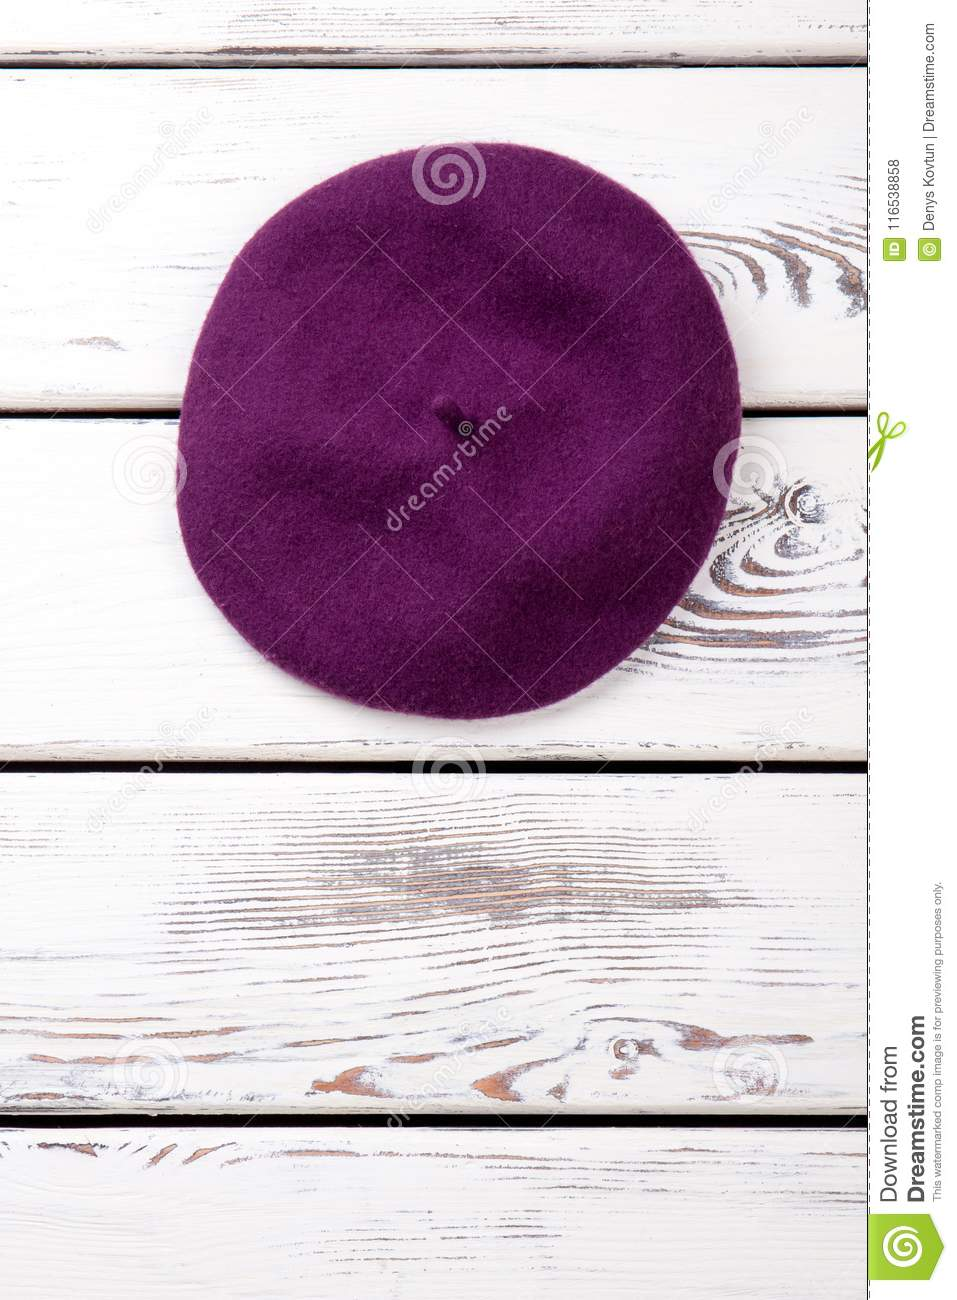 a6bdc419fe5 Feminine Wool Beret And Copy Space. Stock Photo - Image of accessory ...